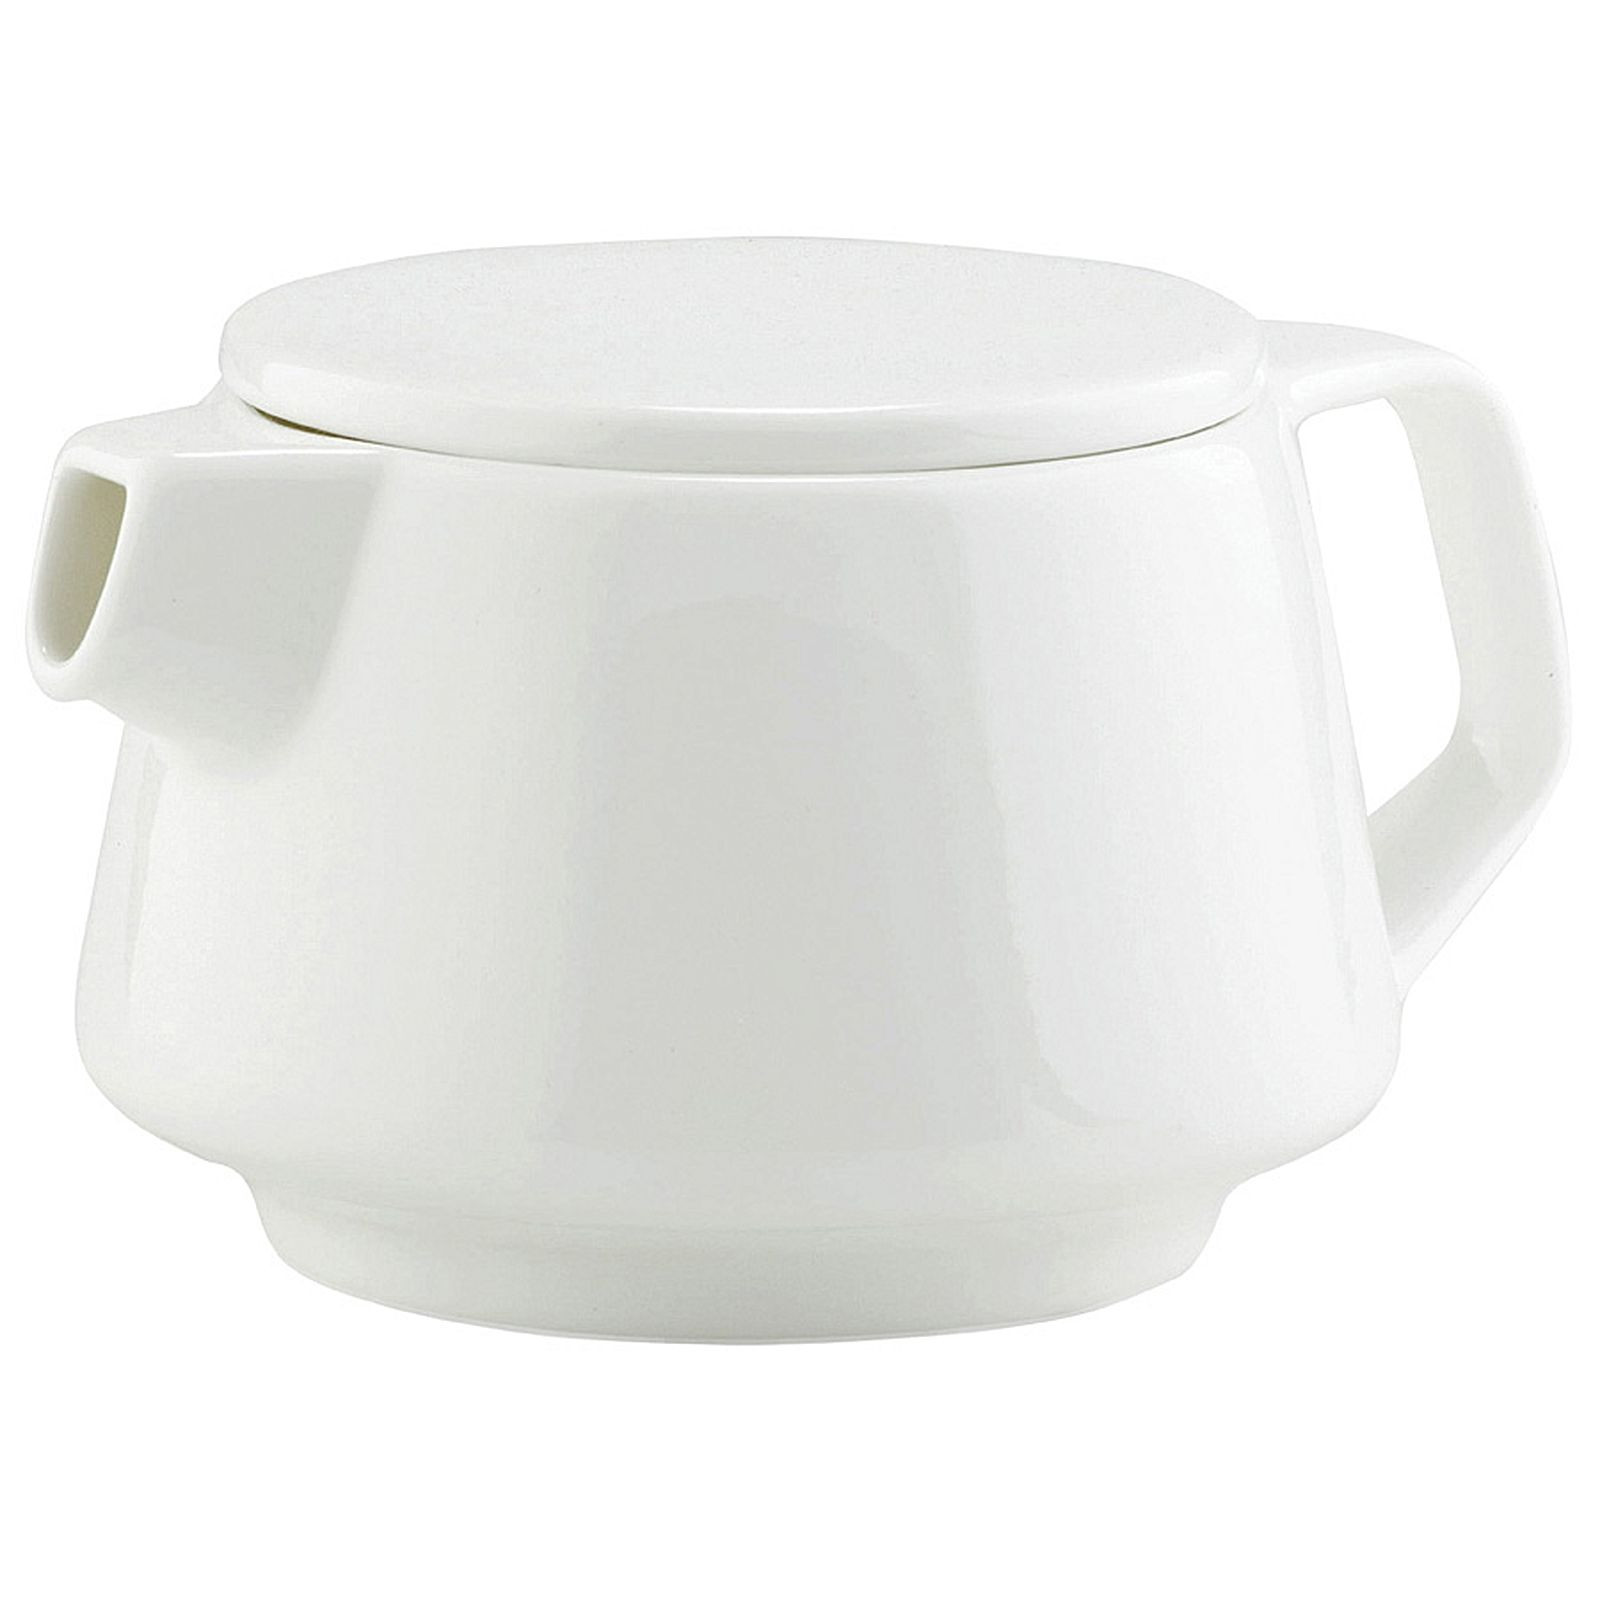 noritake bone china vase of marc newson bone china teapot 450ml by noritake zanui regarding marc newson bone china teapot 450ml